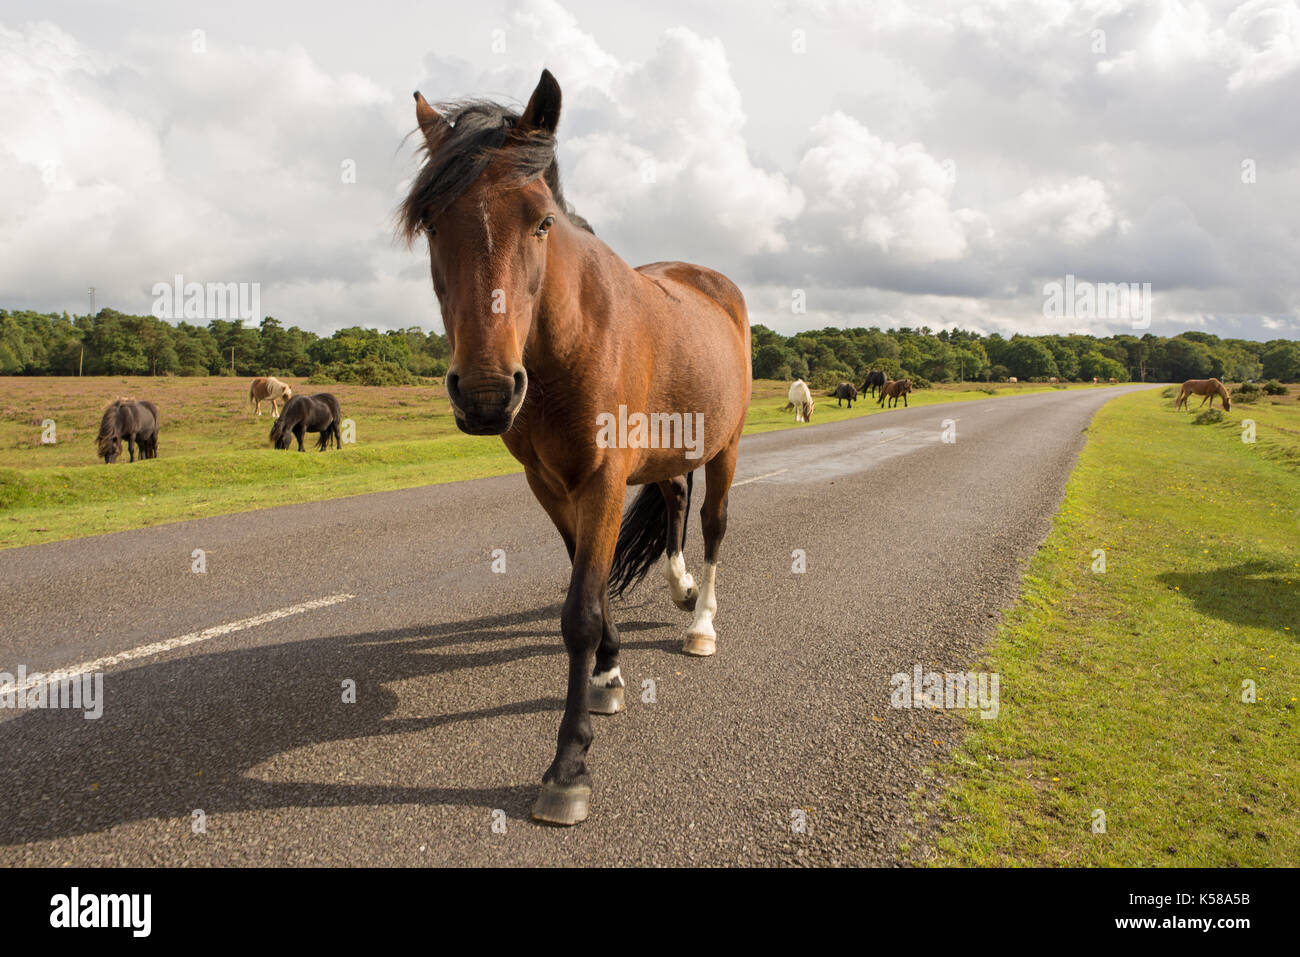 Bramble Hill, New Forest National Park, Hampshire, UK. 8th Sep, 2017. The weather brings sunshine and showers during the afternoon. A westerly air flow carrying rain showers, some heavy and thundery is established over the south west and central southern England. Credit: Paul Biggins/Alamy Live News - Stock Image